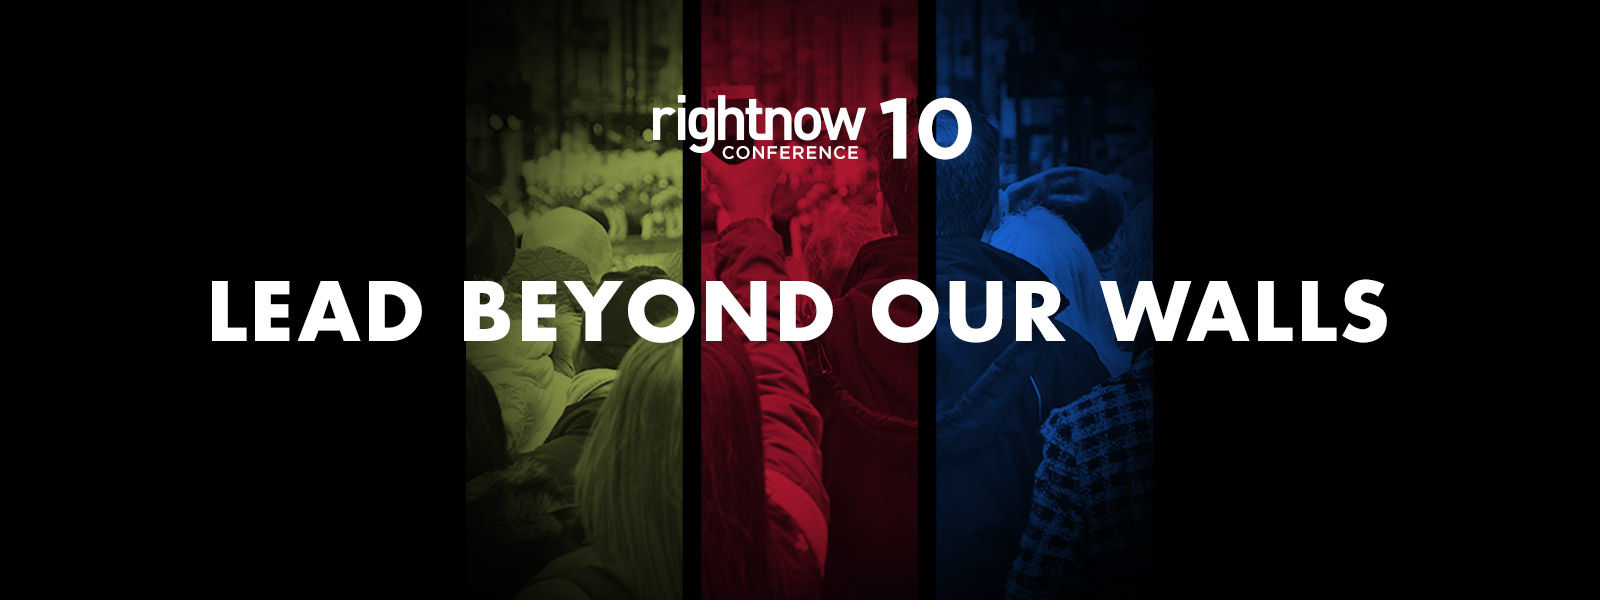 RightNow Conference: Lead Beyond Our Walls (2010)